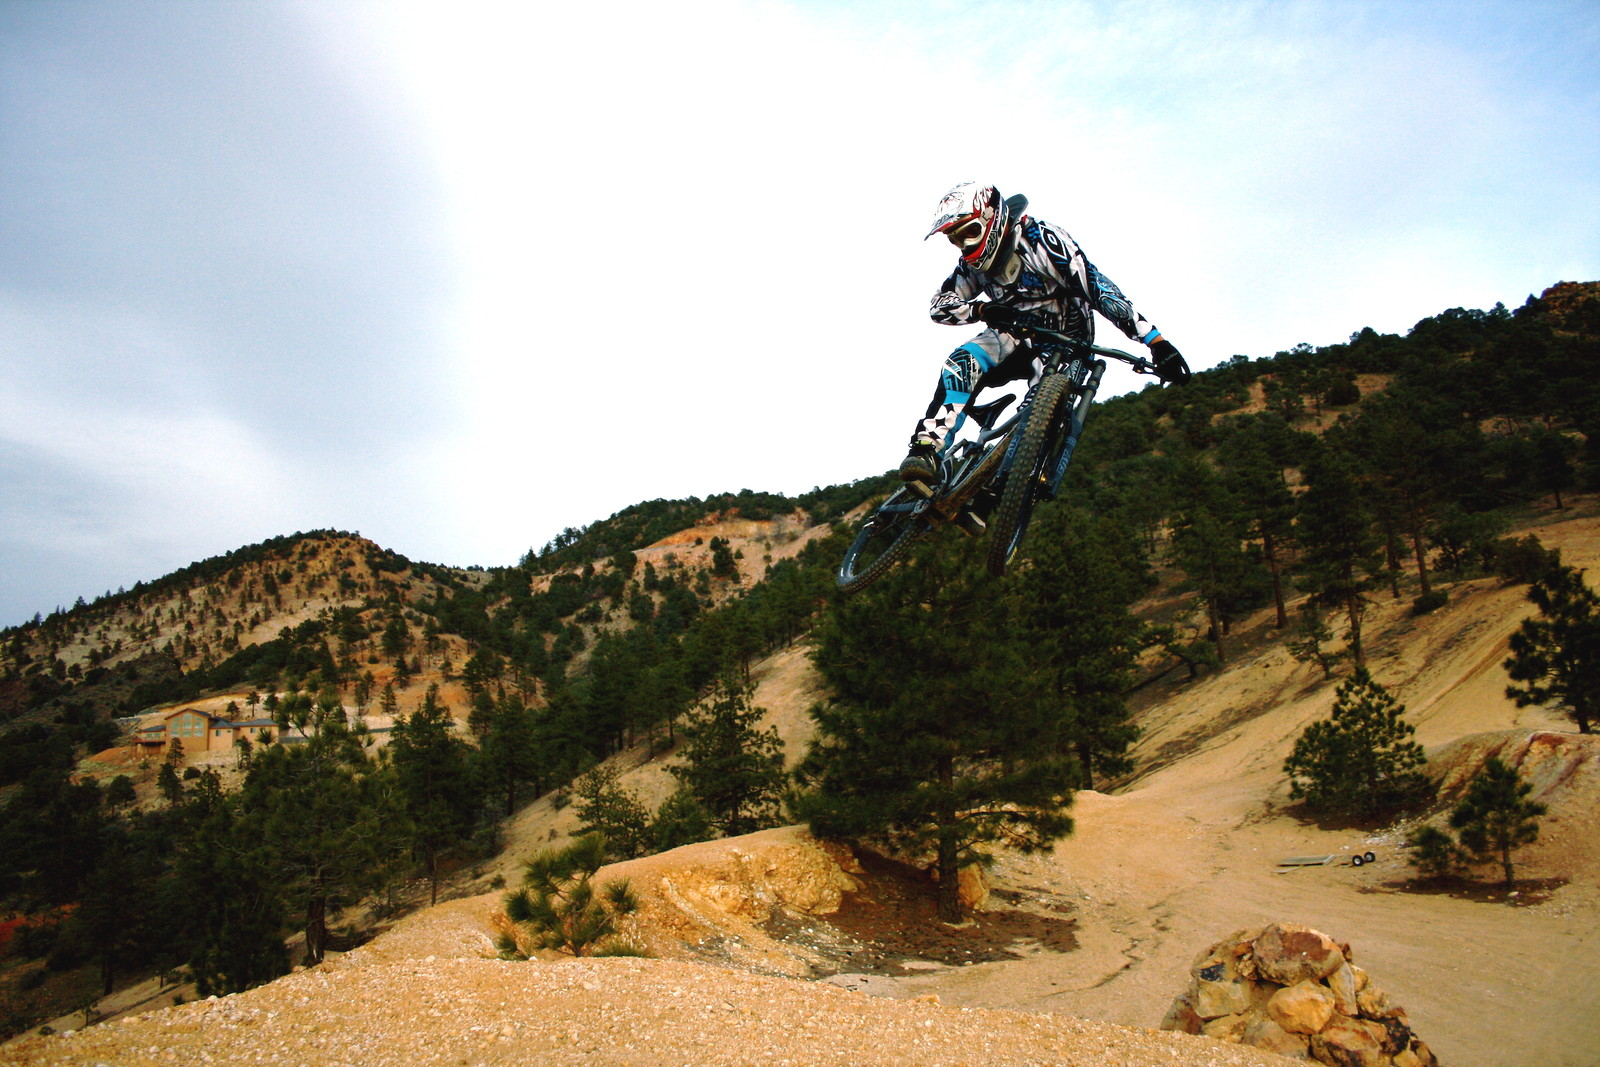 Geiger DH - jptree - Mountain Biking Pictures - Vital MTB